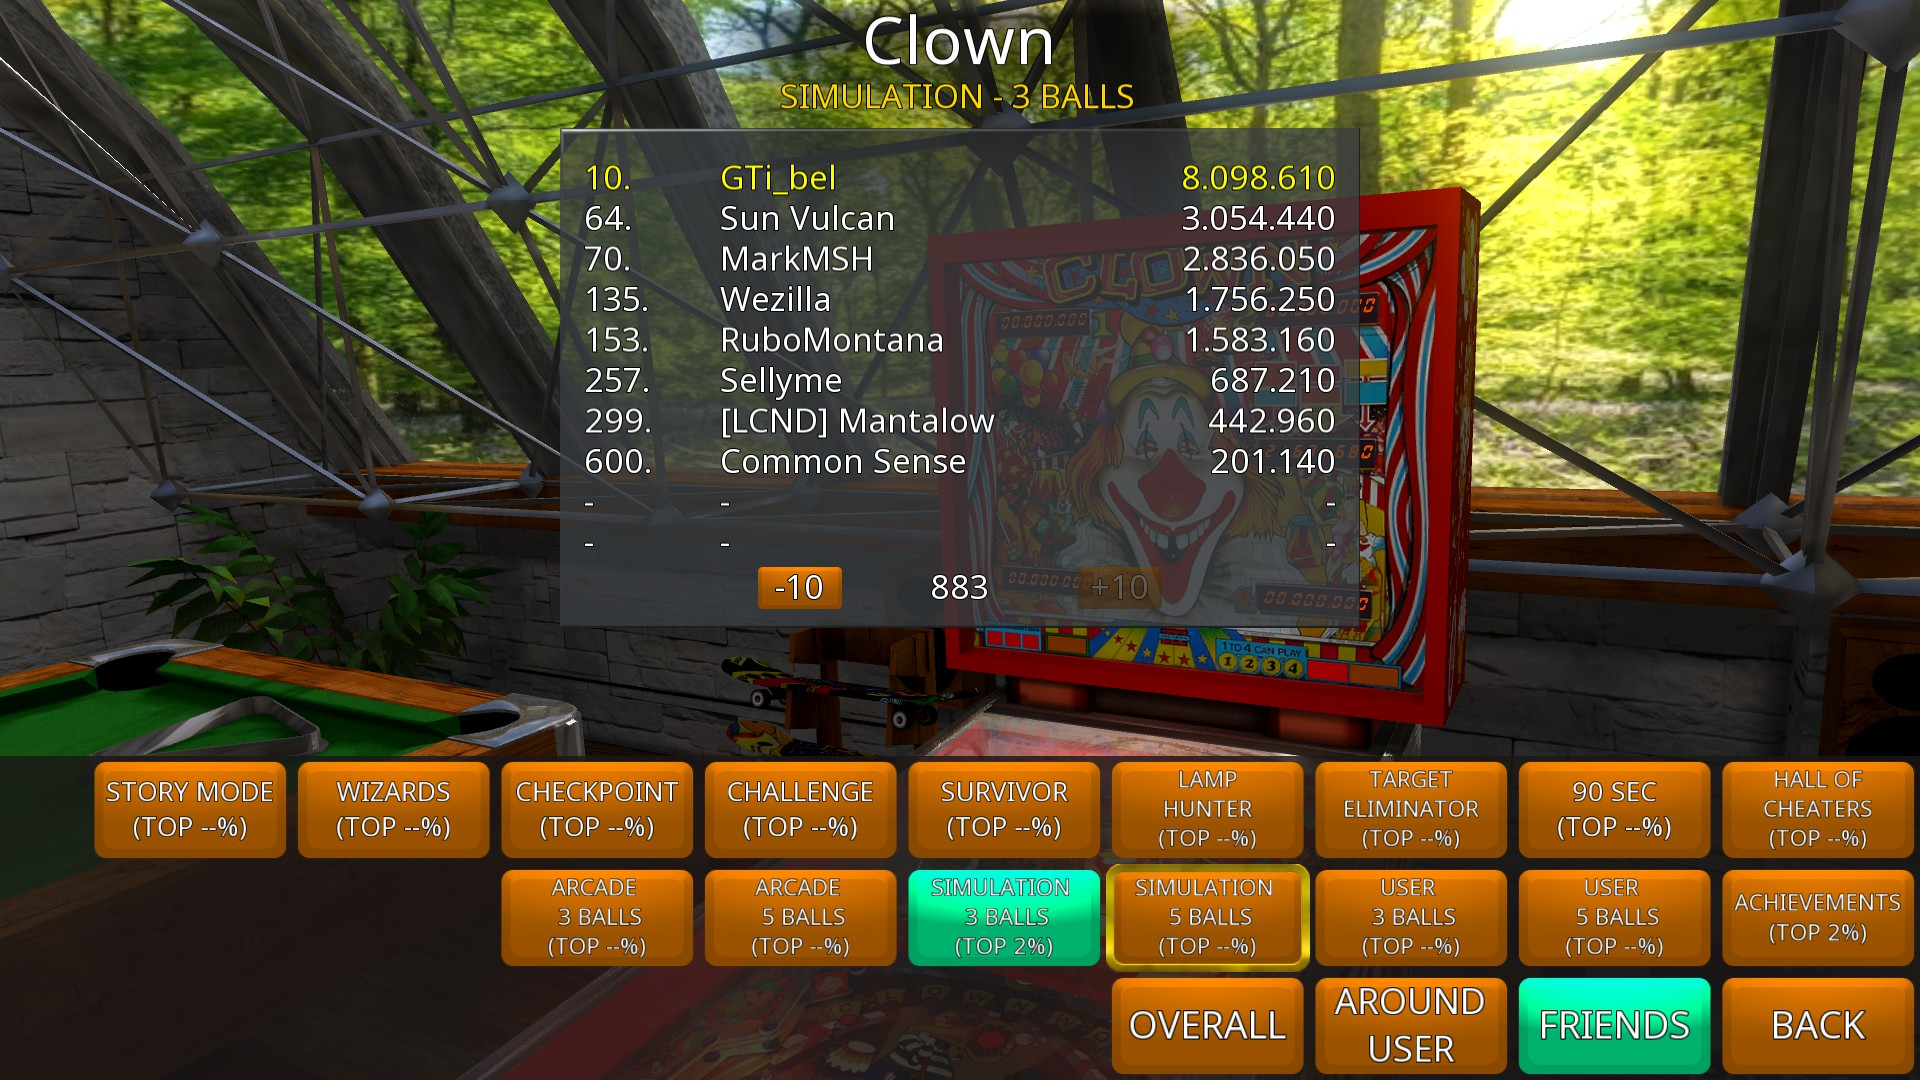 GTibel: Zaccaria Pinball: Clown [3 balls] (PC) 8,098,610 points on 2018-08-20 06:33:09